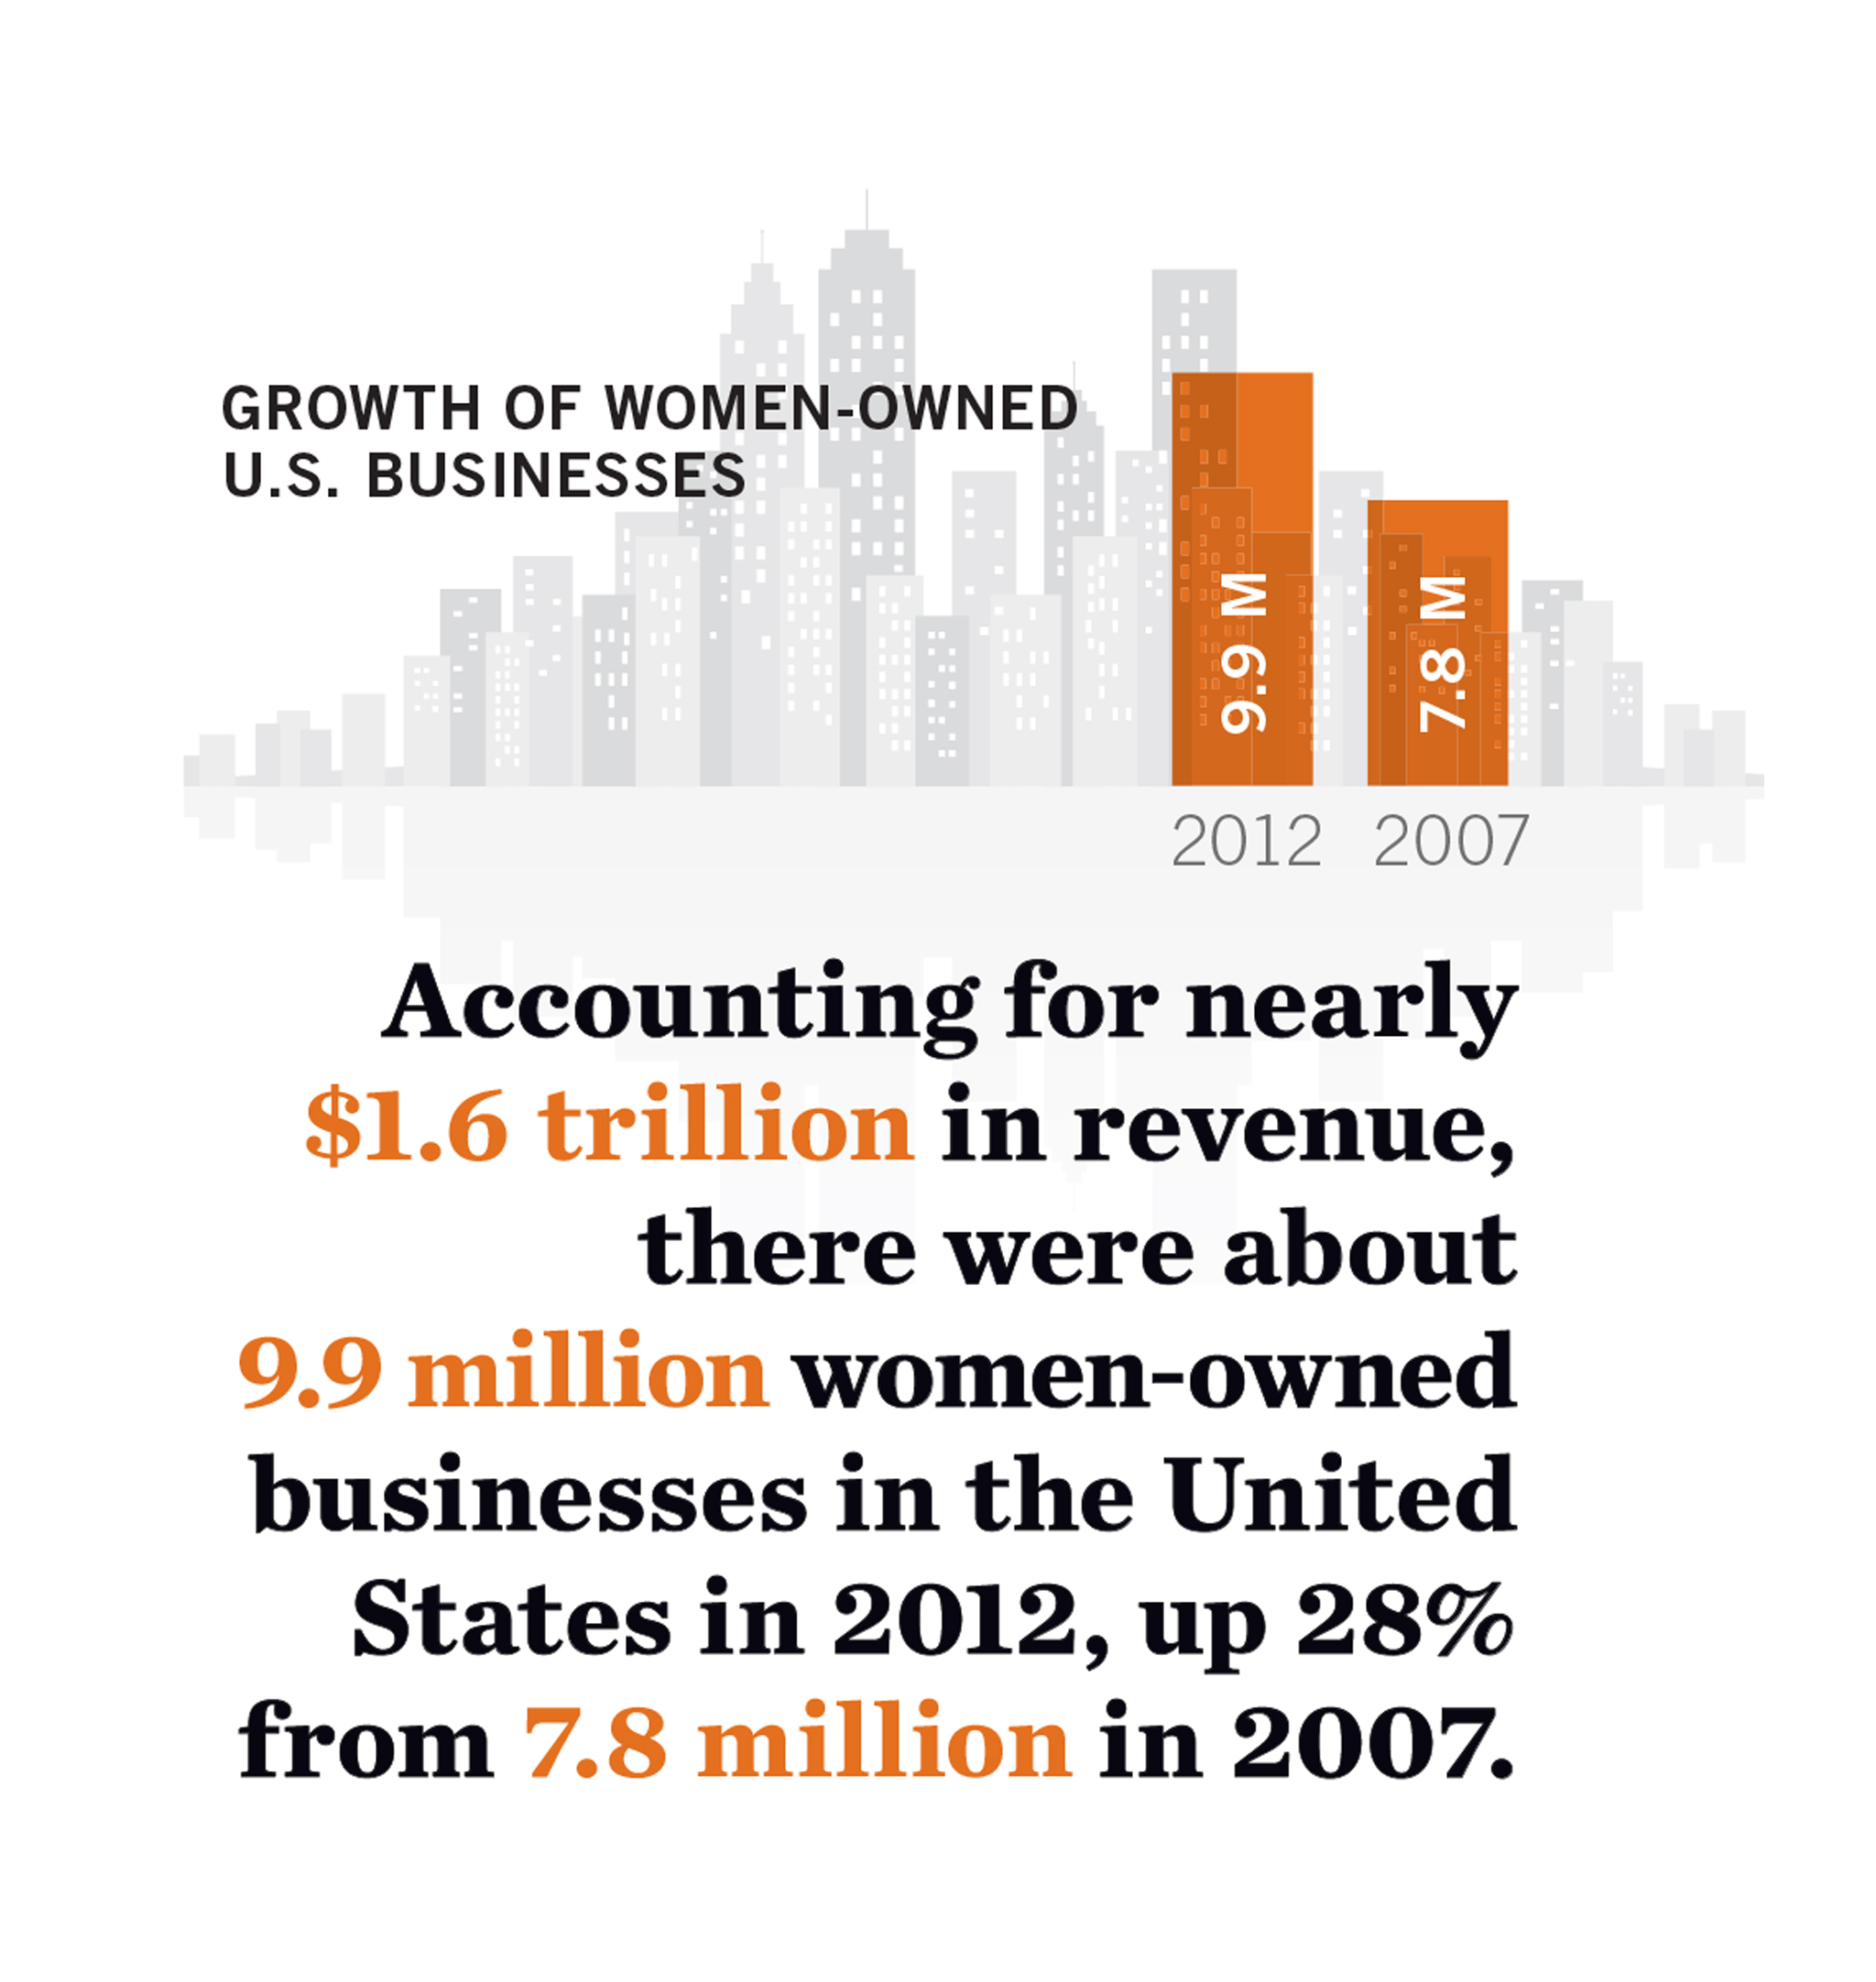 Growth of Women-Owned Business Infographic